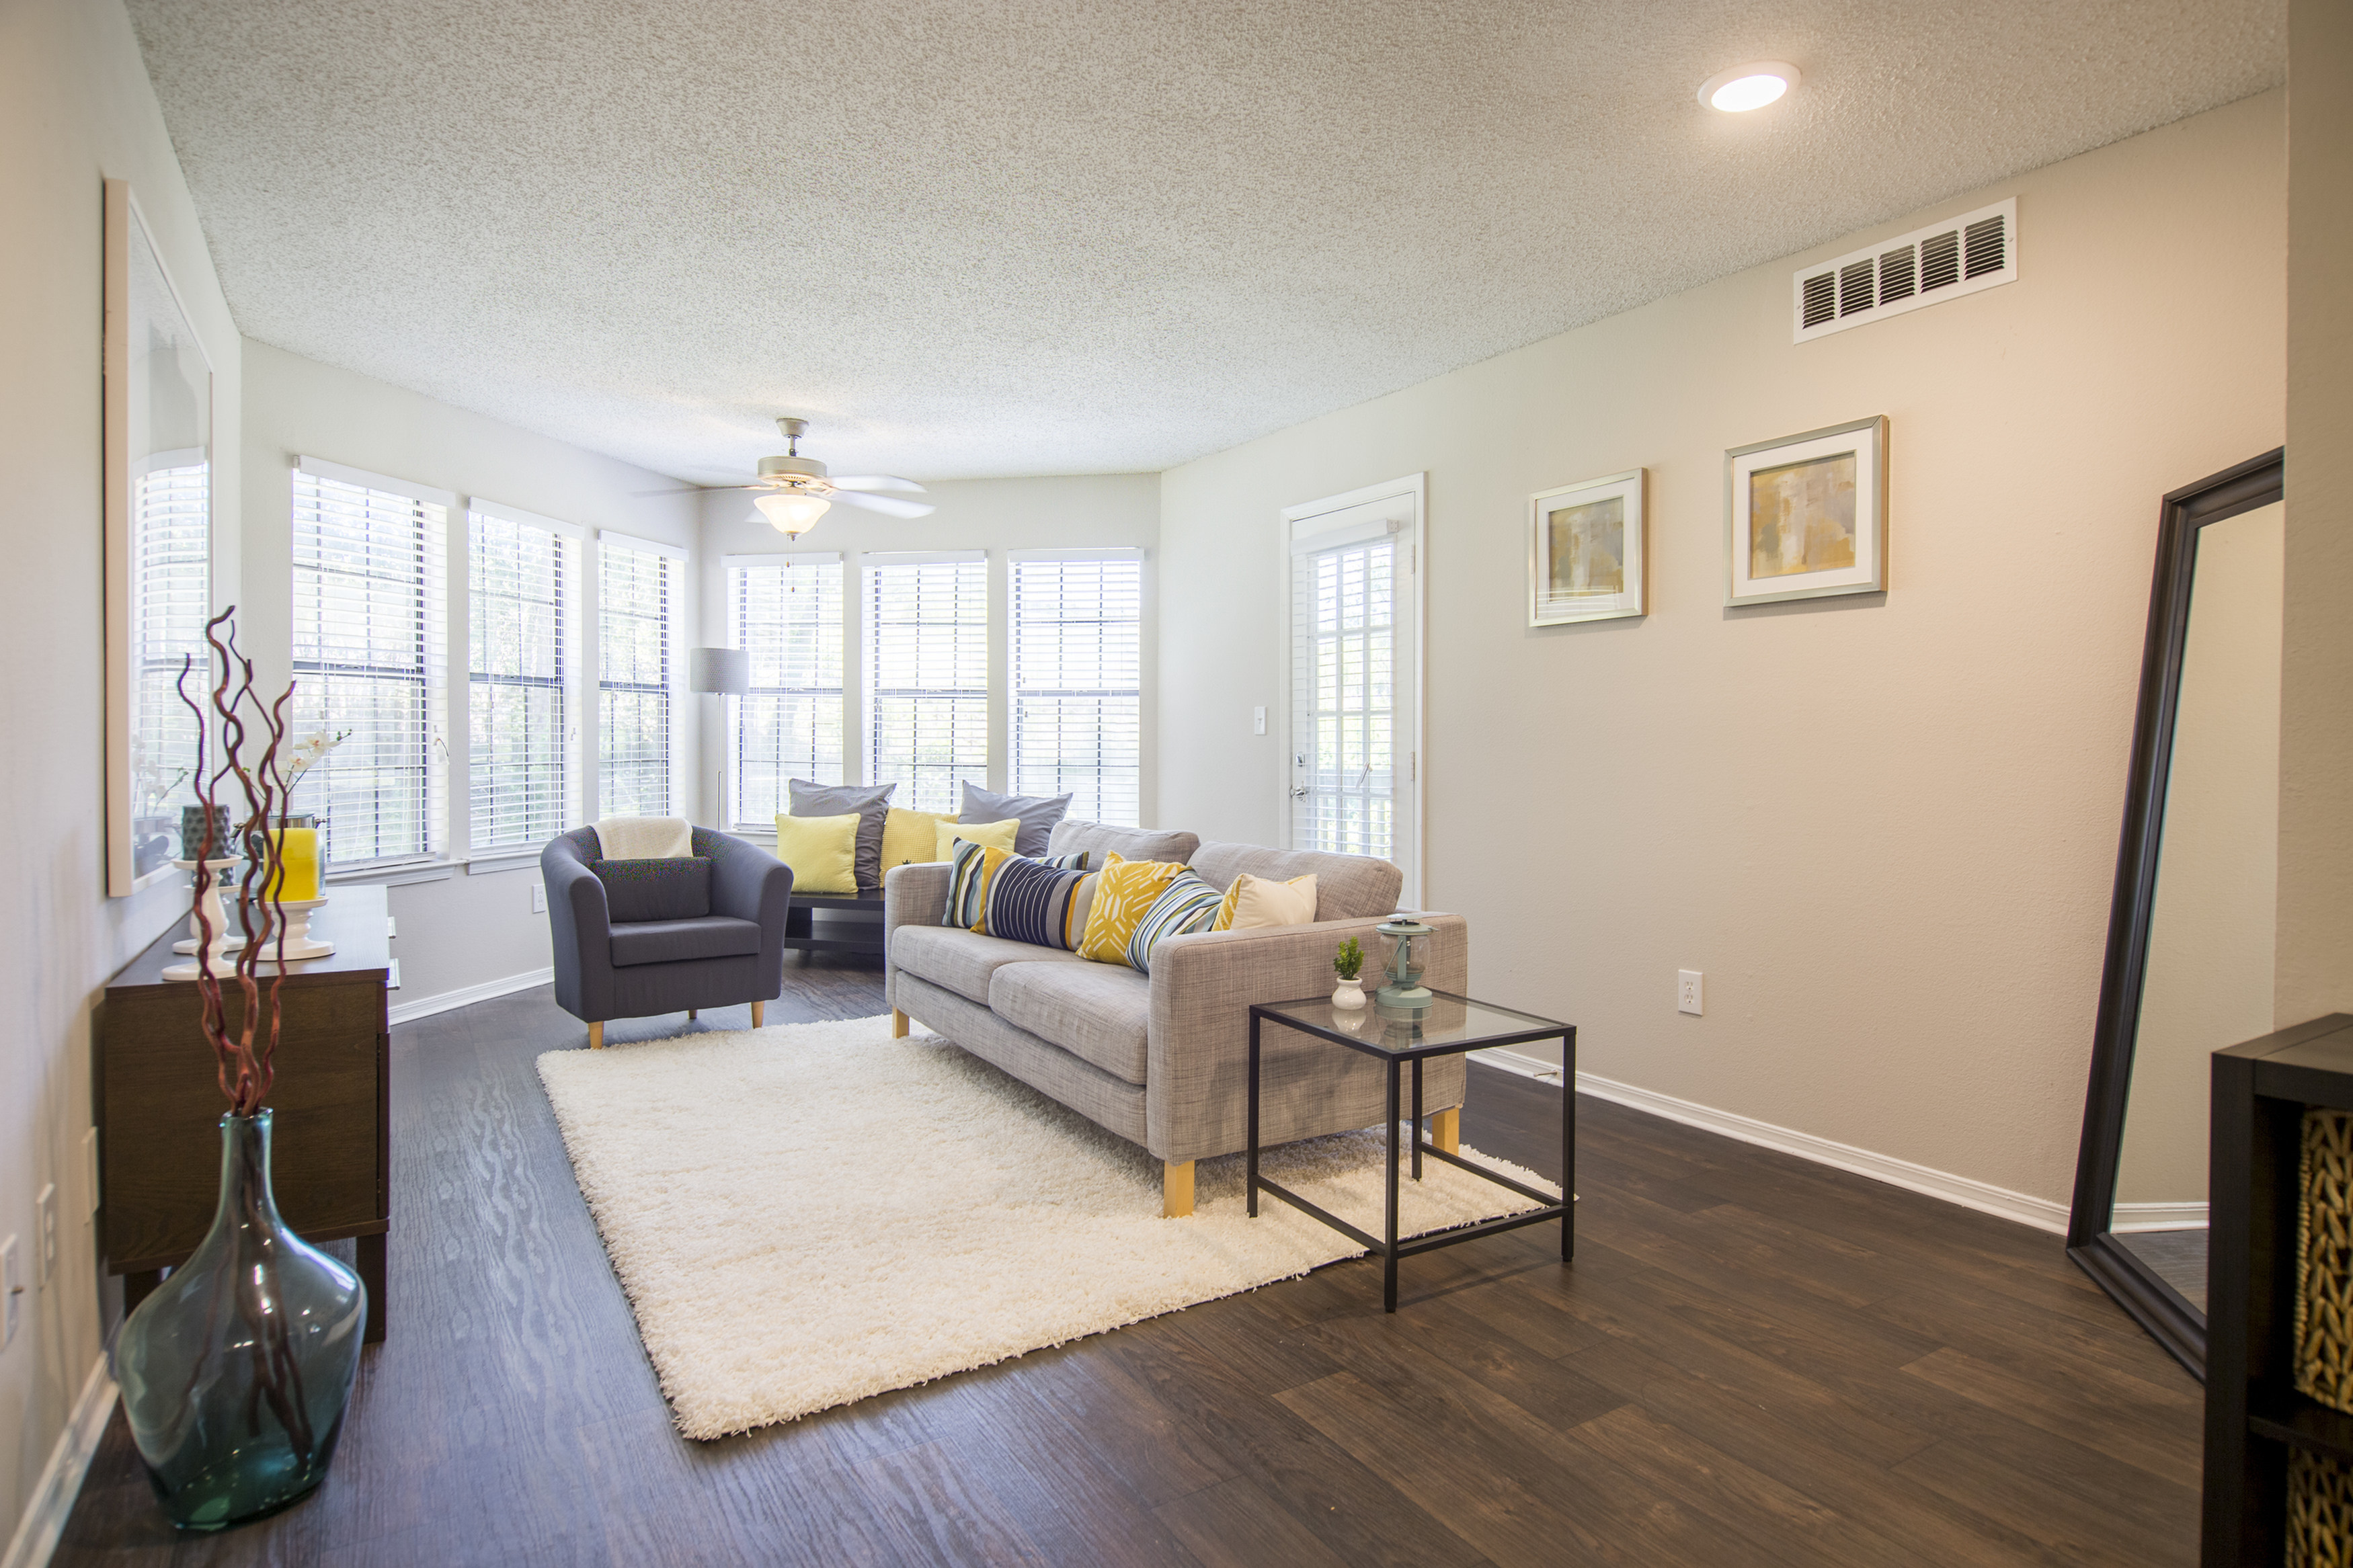 20 best apartments for rent in duluth, ga (with pictures)!